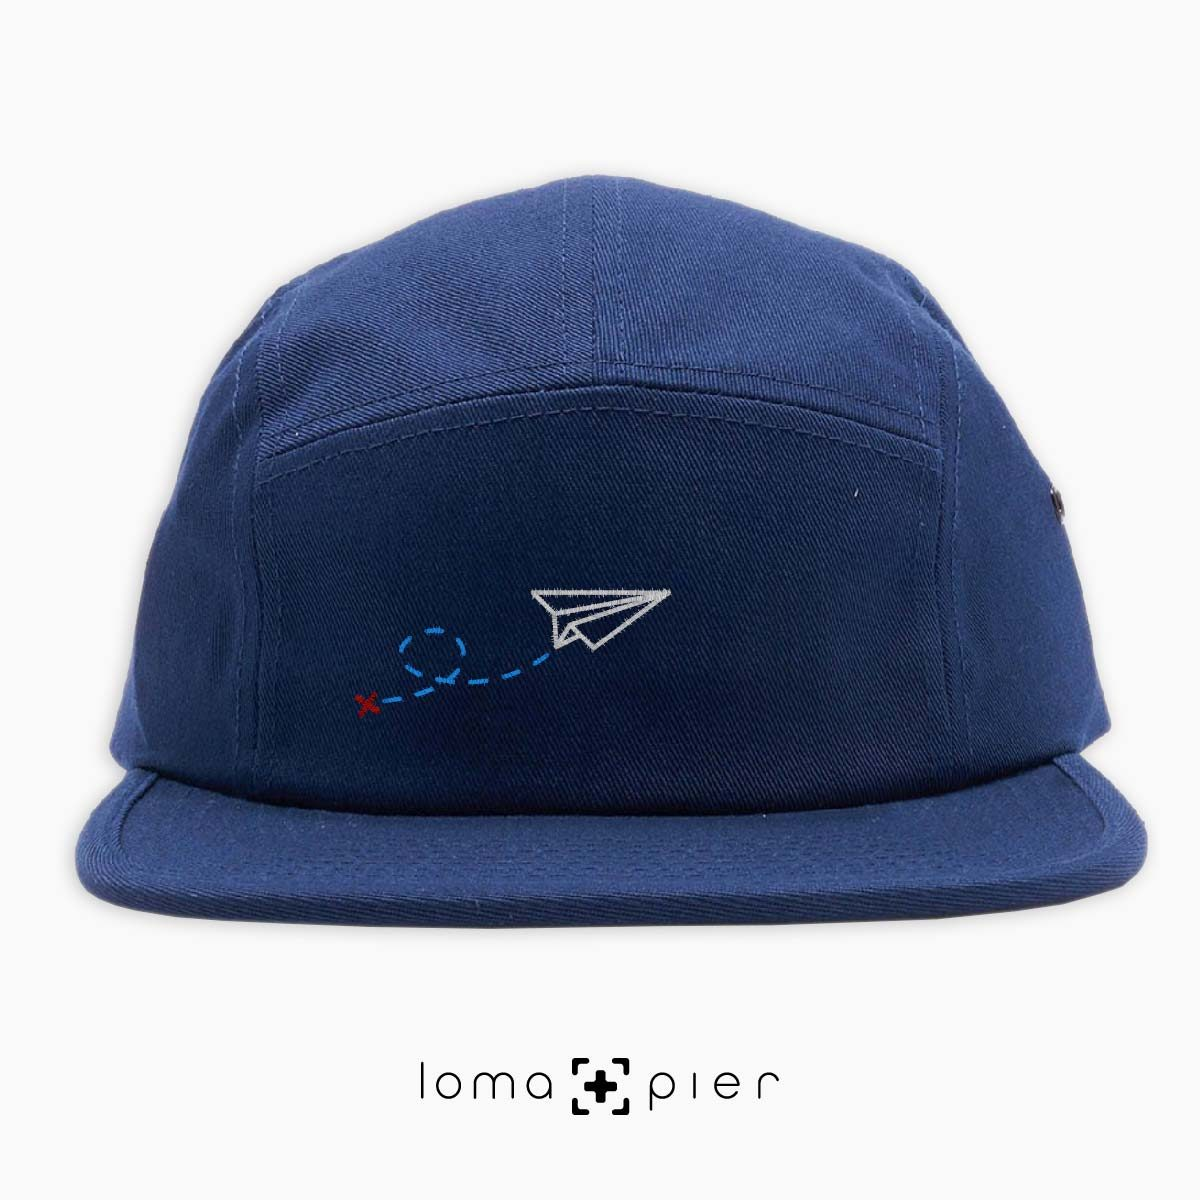 PAPER AIRPLANE icon embroidered on a navy blue cotton 5-panel hat by loma+pier hat store